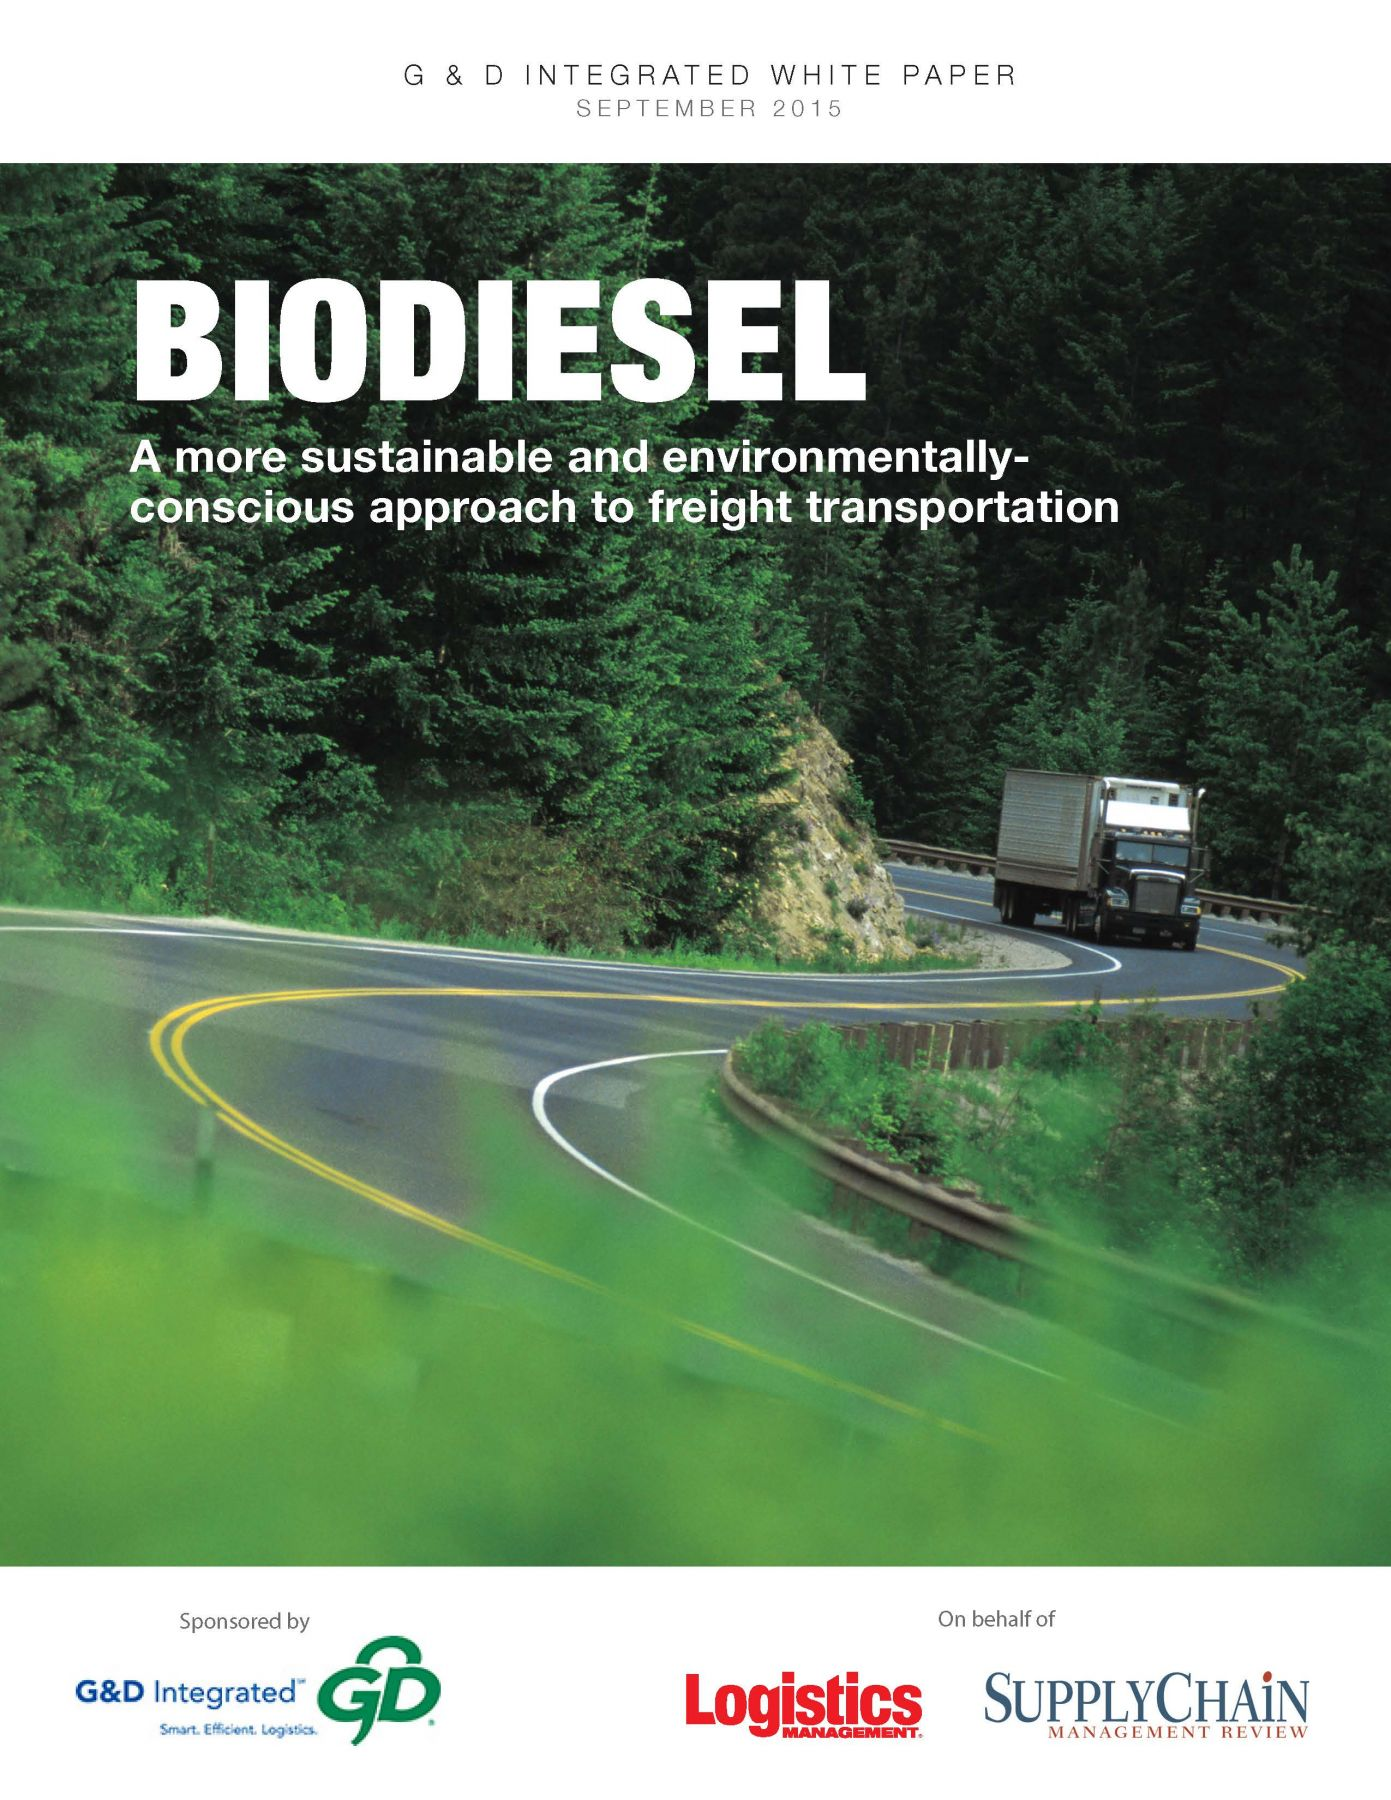 How Biodiesel Can Benefit Freight Transportation